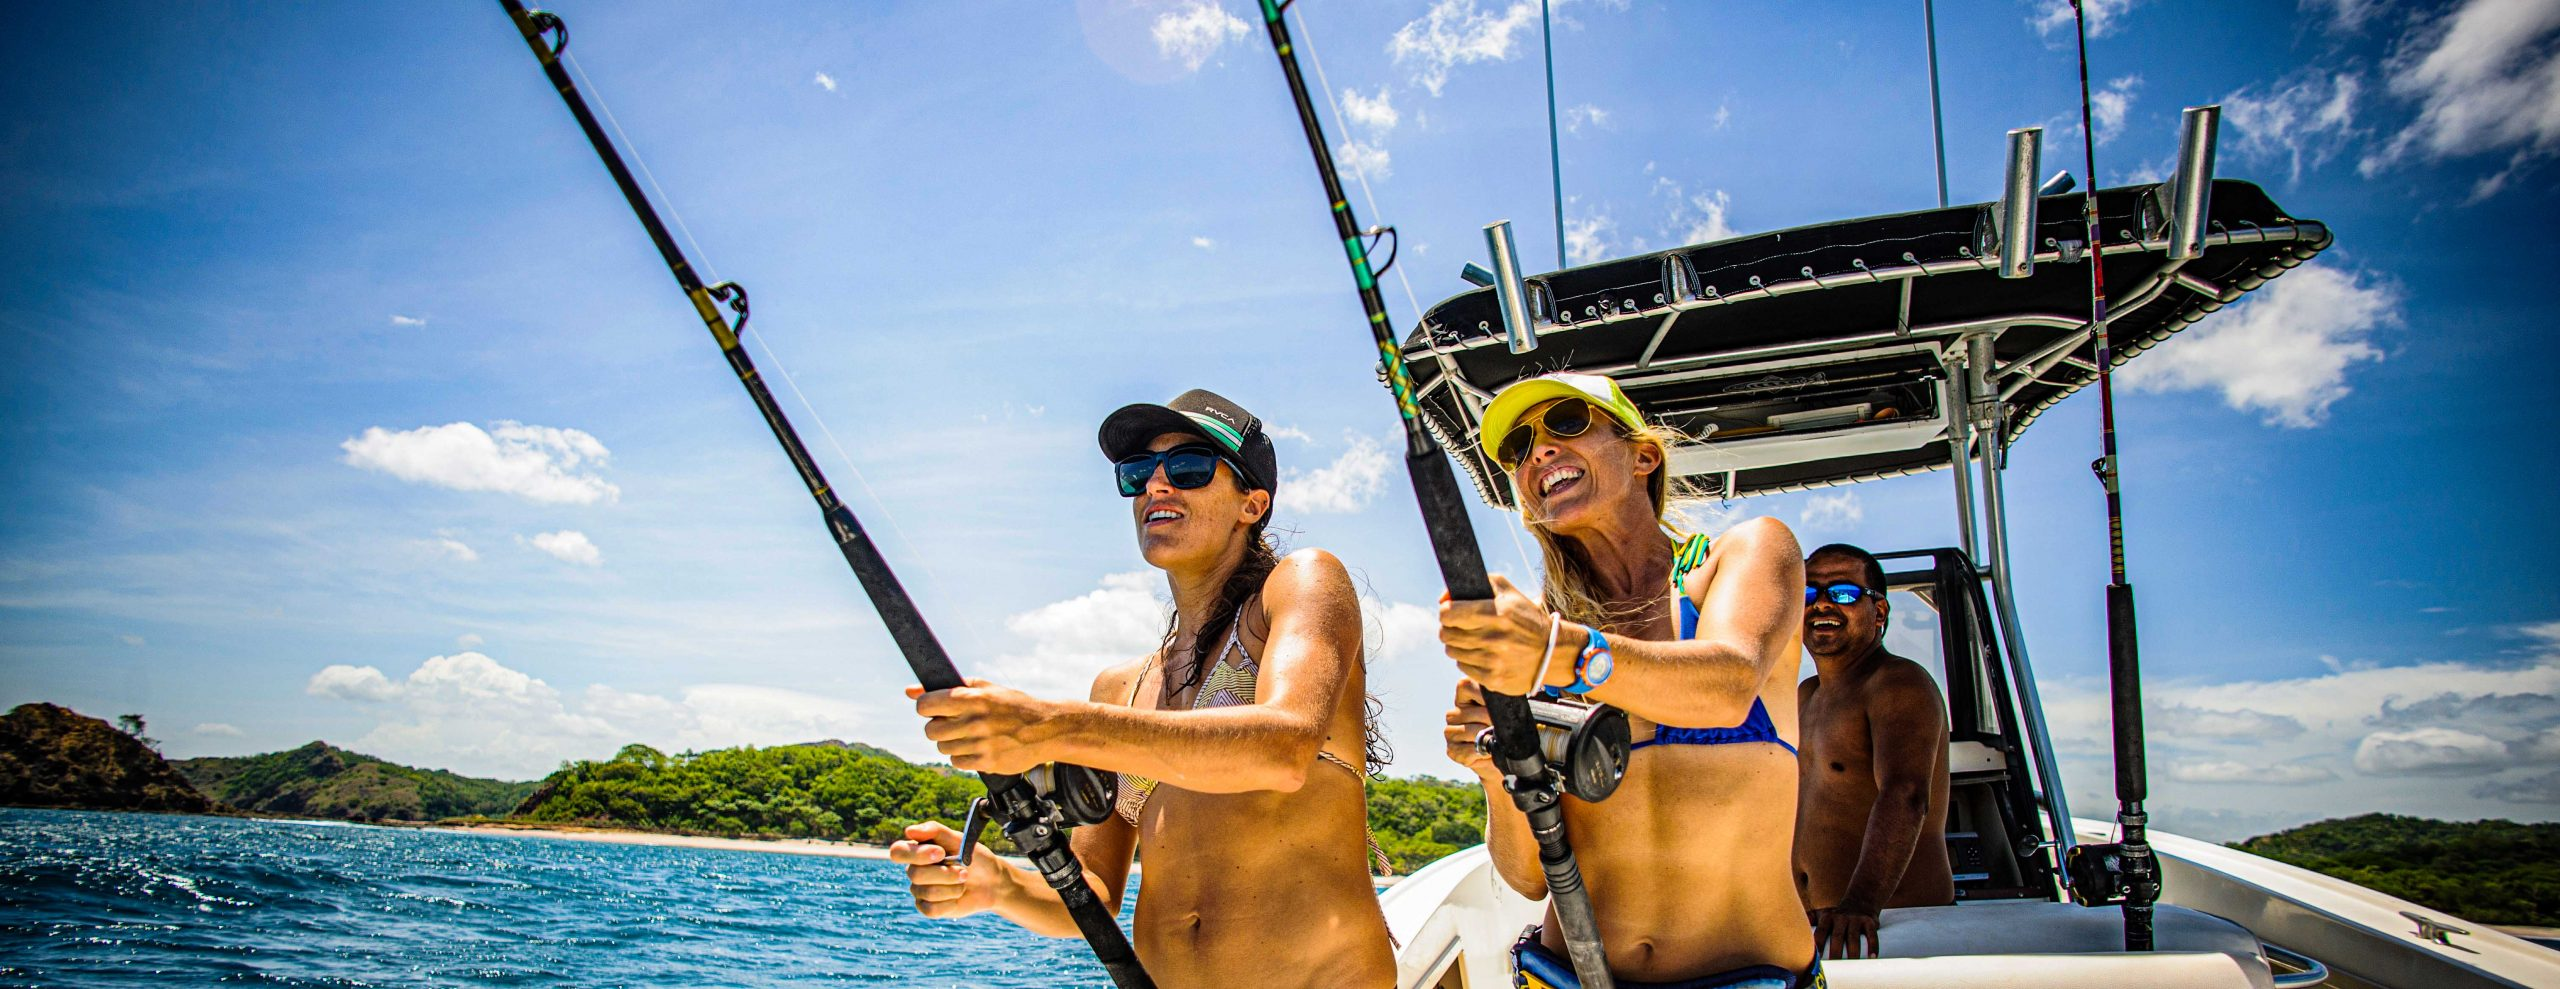 Costa Rica Sports Fishing Vacations Guide